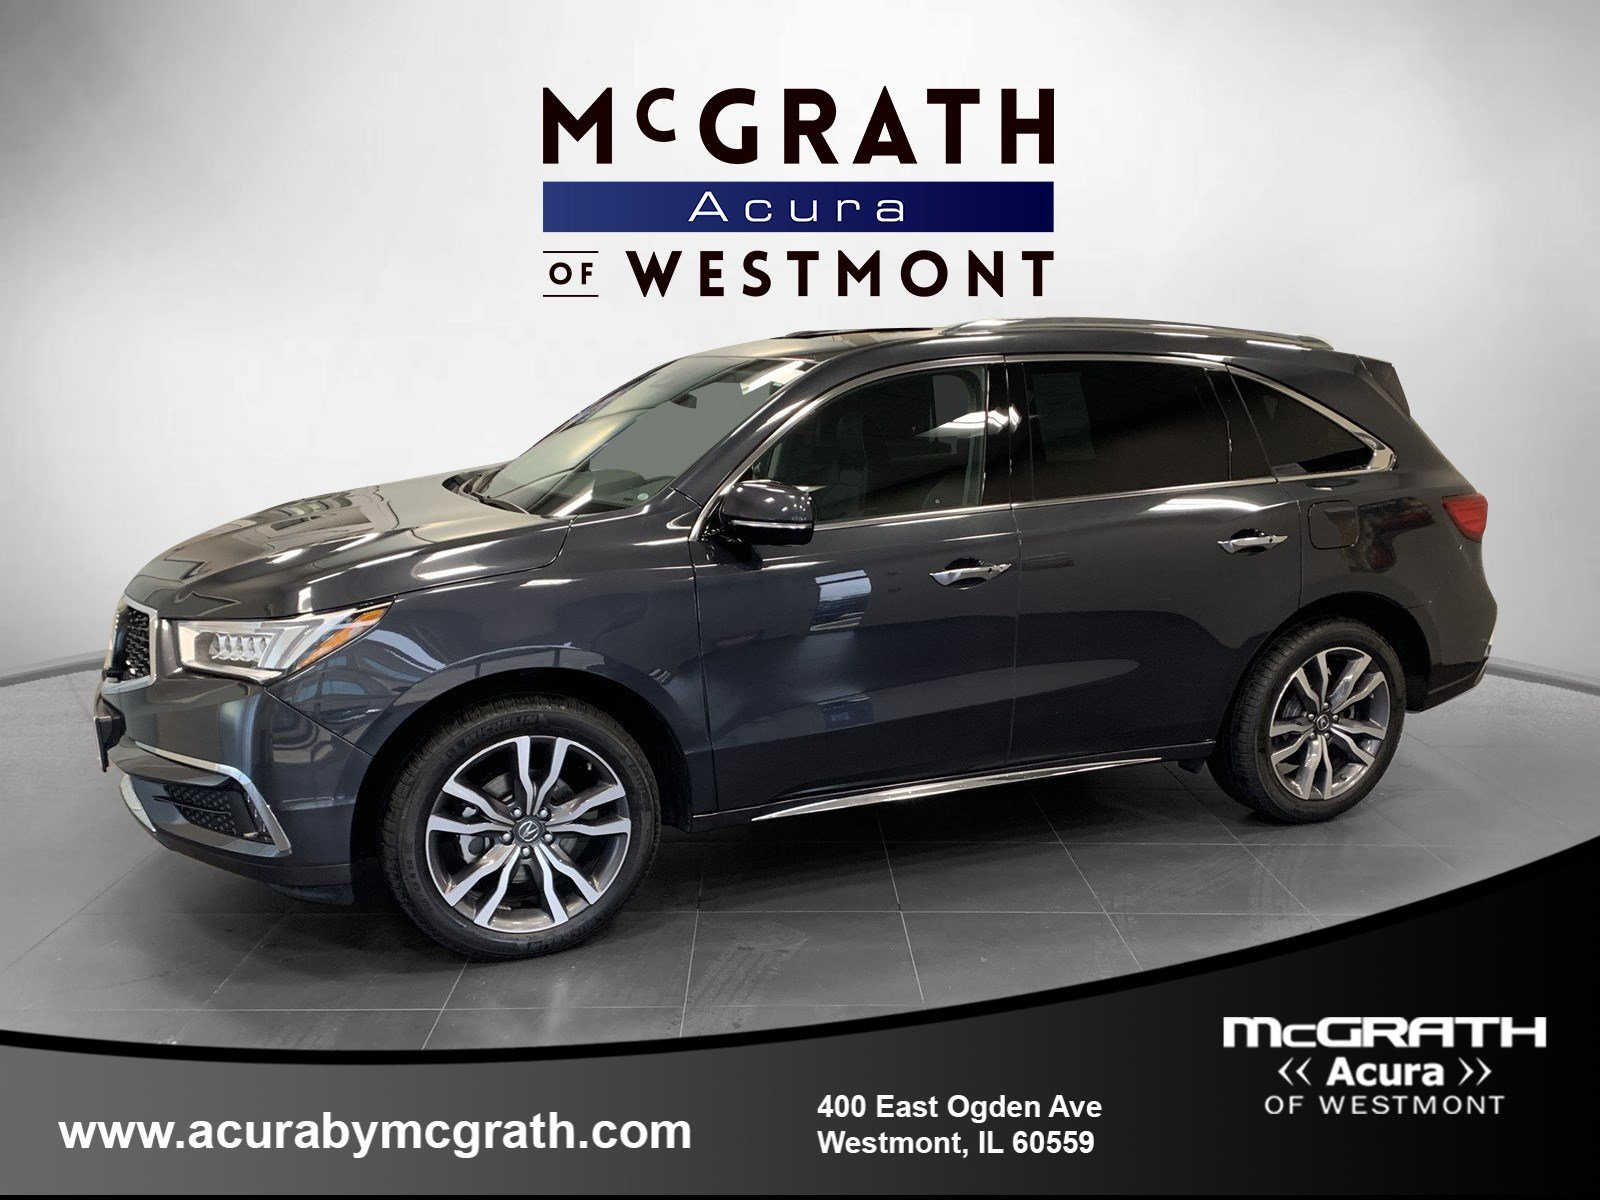 Certified Pre-Owned 2019 Acura MDX SH-AWD with Advance and Entertainment Packages